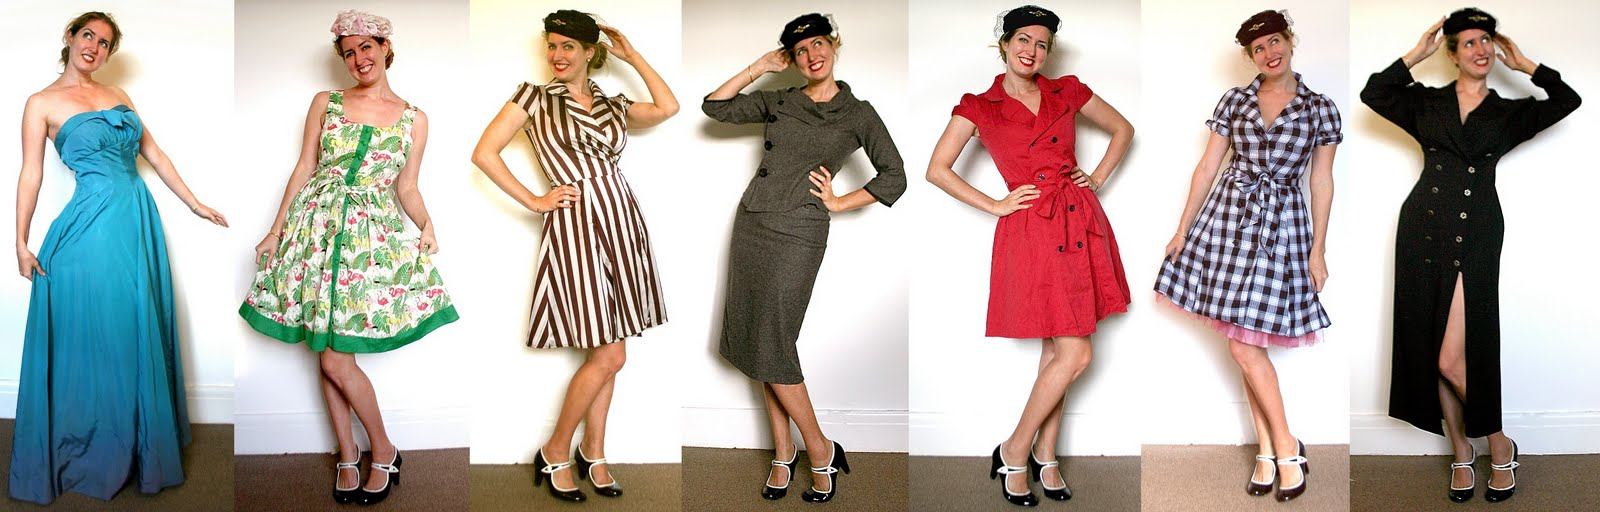 New Vintage Style Clothing